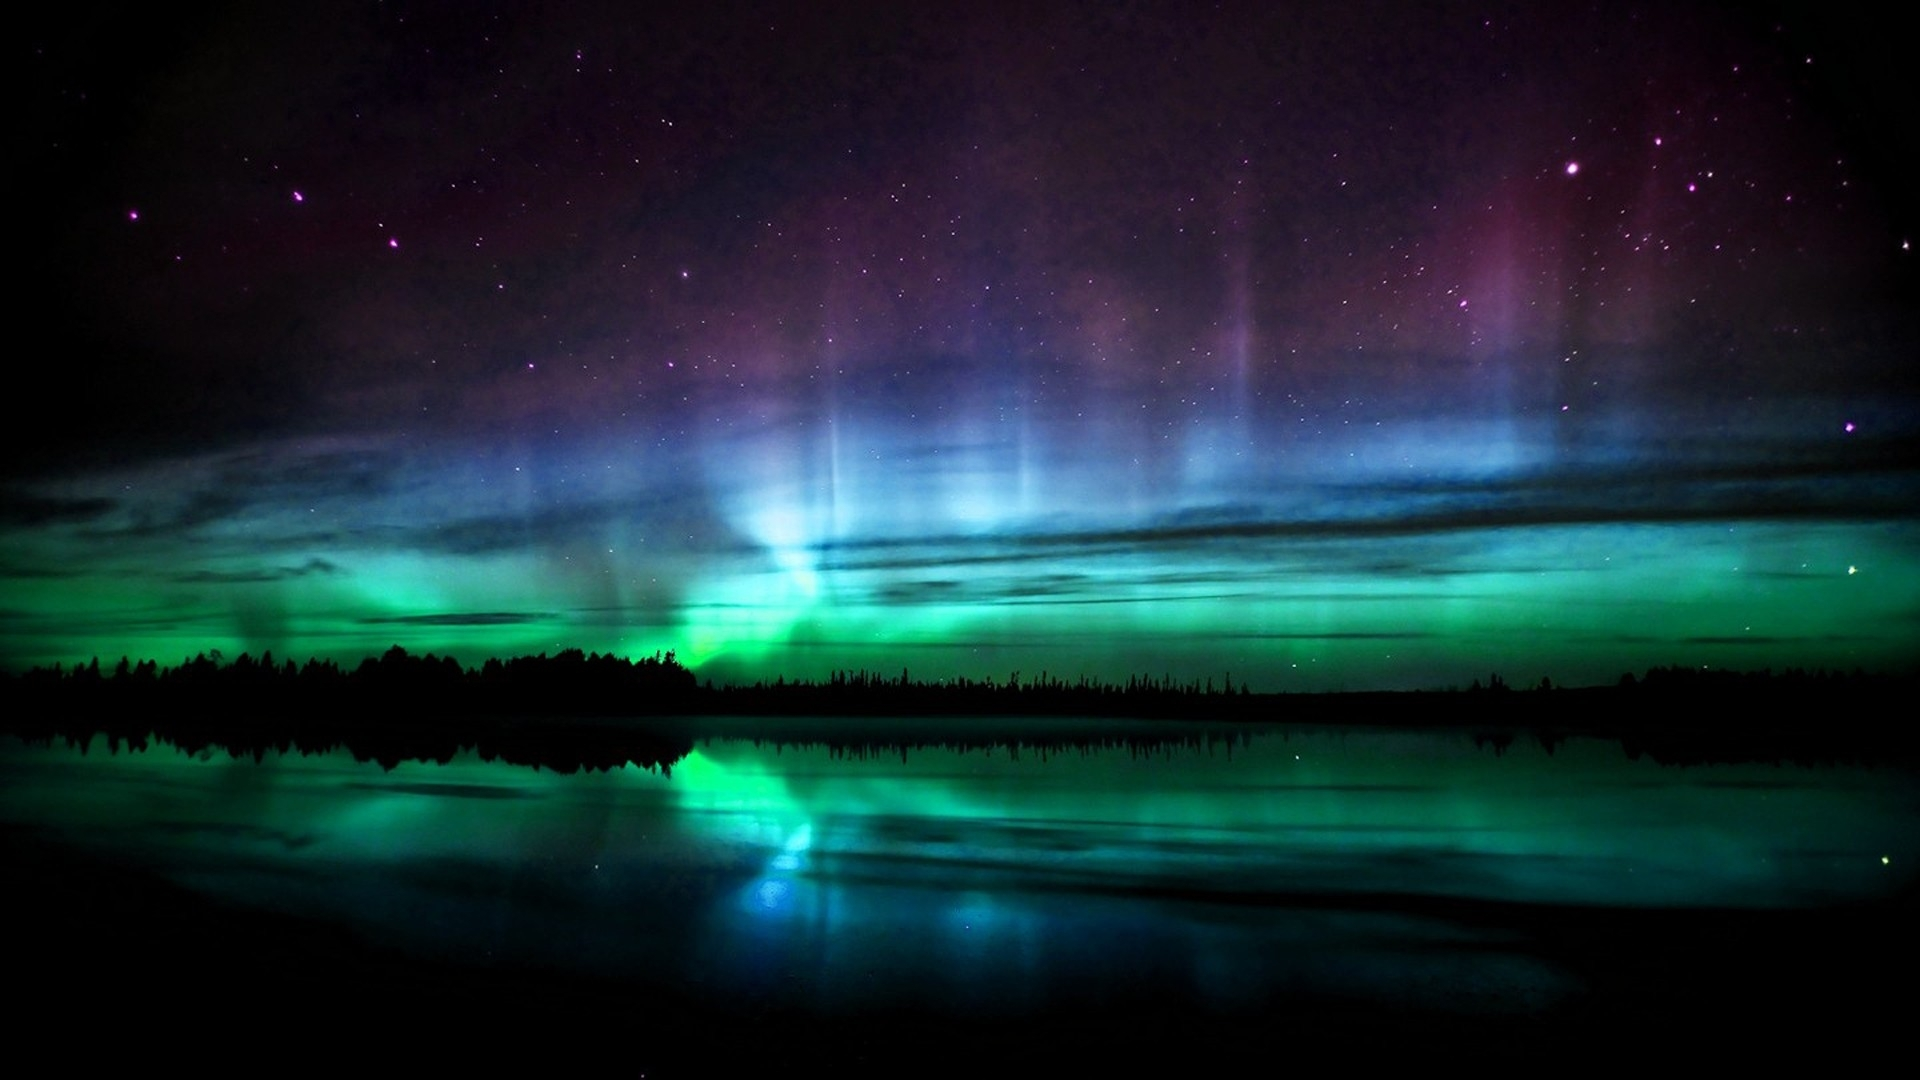 Due to Storms and Weather Change 'Aurora Borealis' Northern Lights were seen from Long Island!